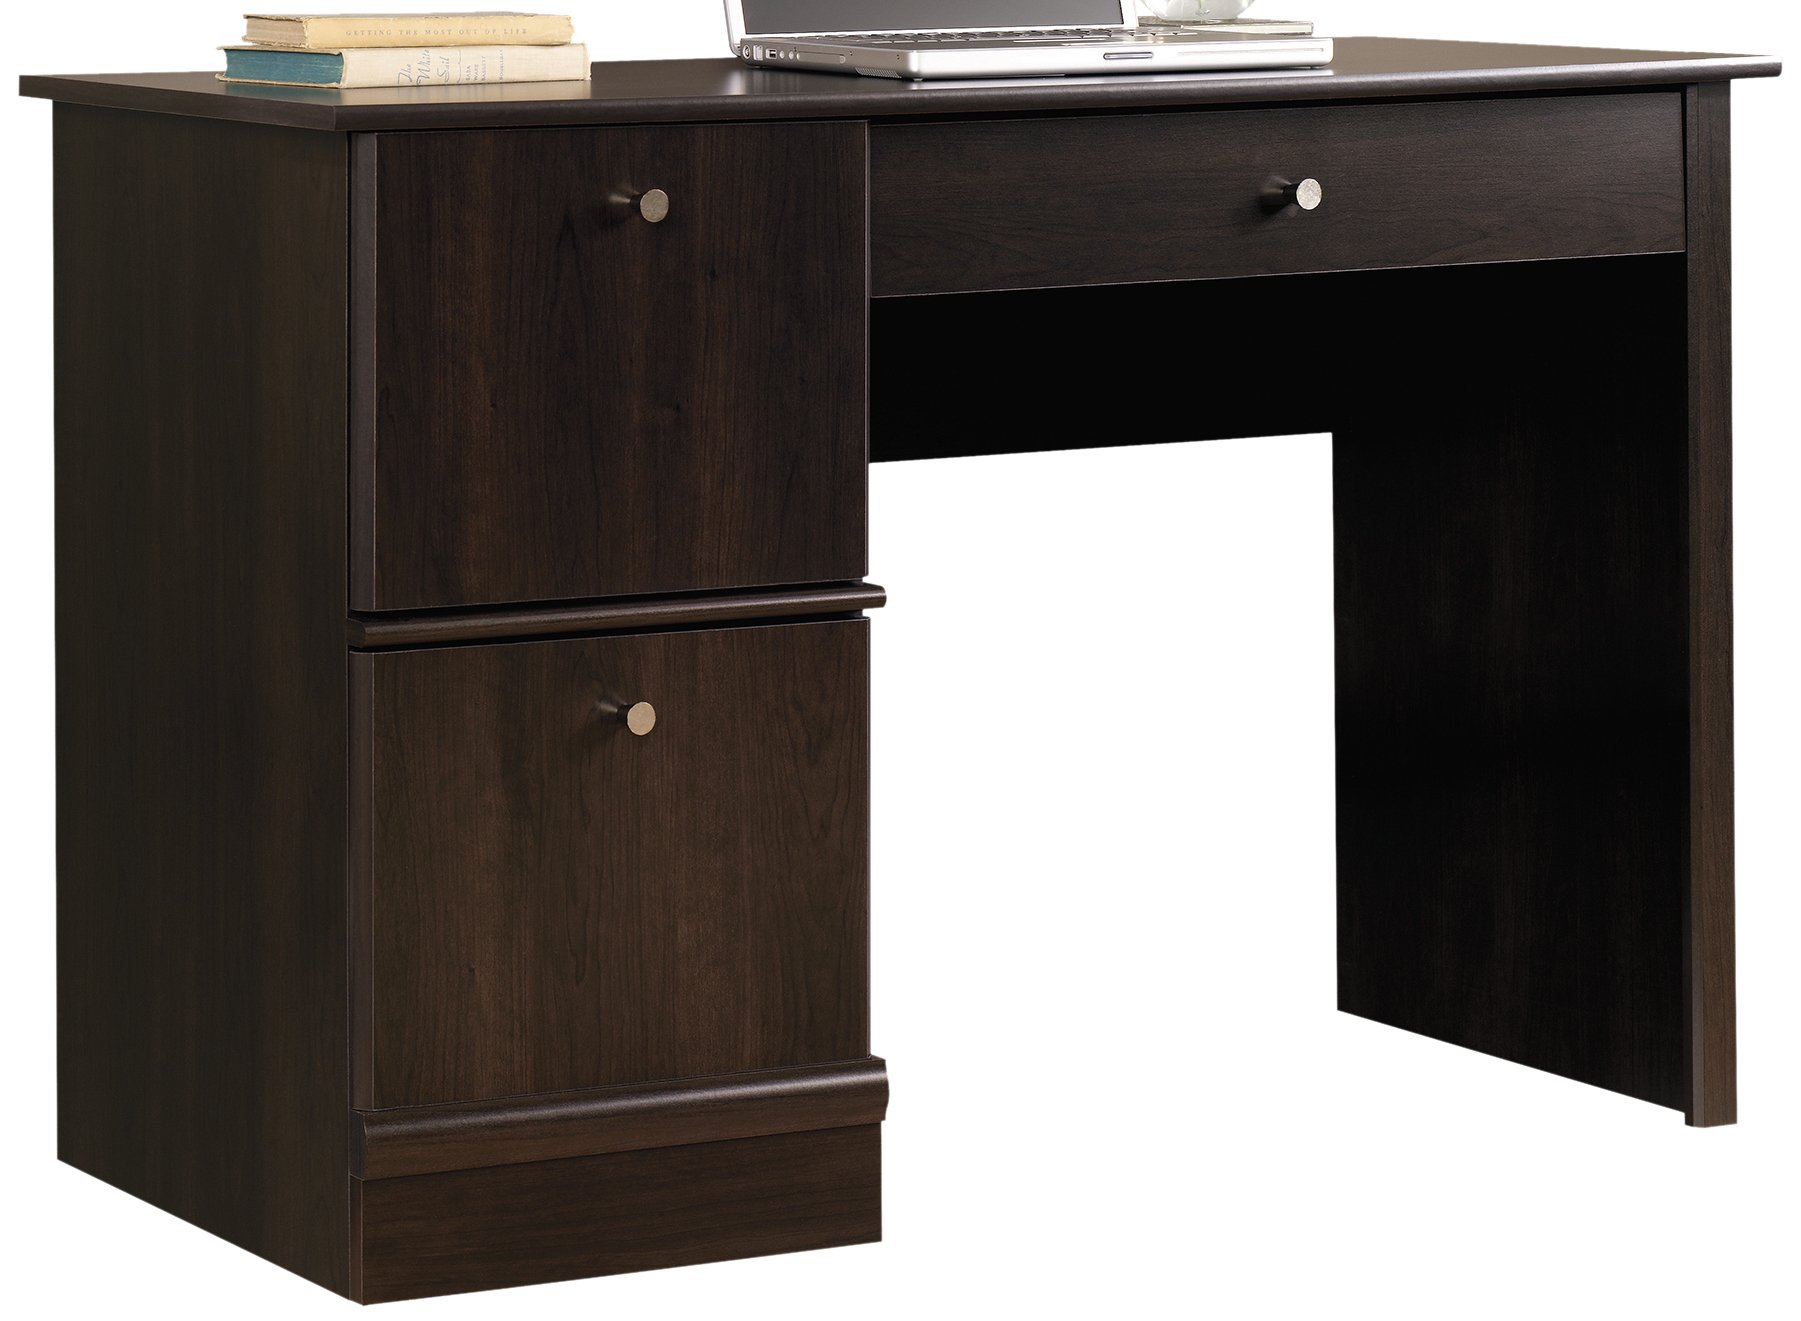 Sauder 408995 Computer Desk, L: 46.54'' x W: 18.50'' x H: 30.16'', Cinnamon Cherry Finish by Sauder